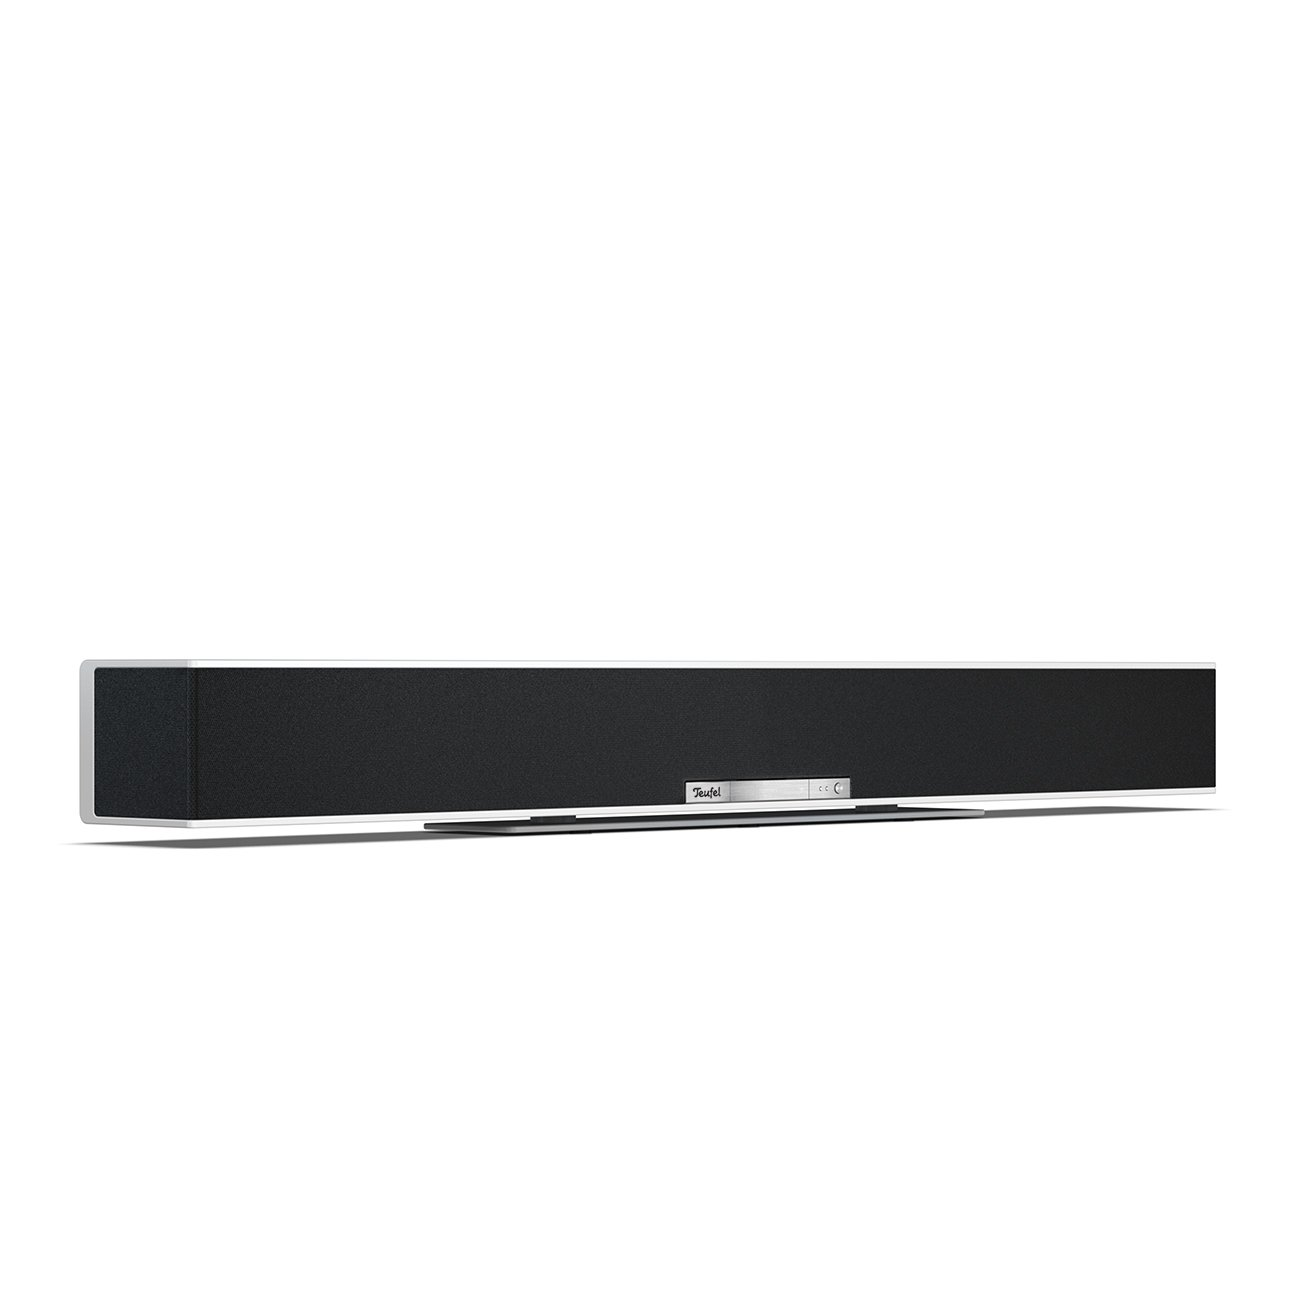 Soundbar Weiß Teufel 11132 Soundbar Streaming Hdmi Bluetooth Tv